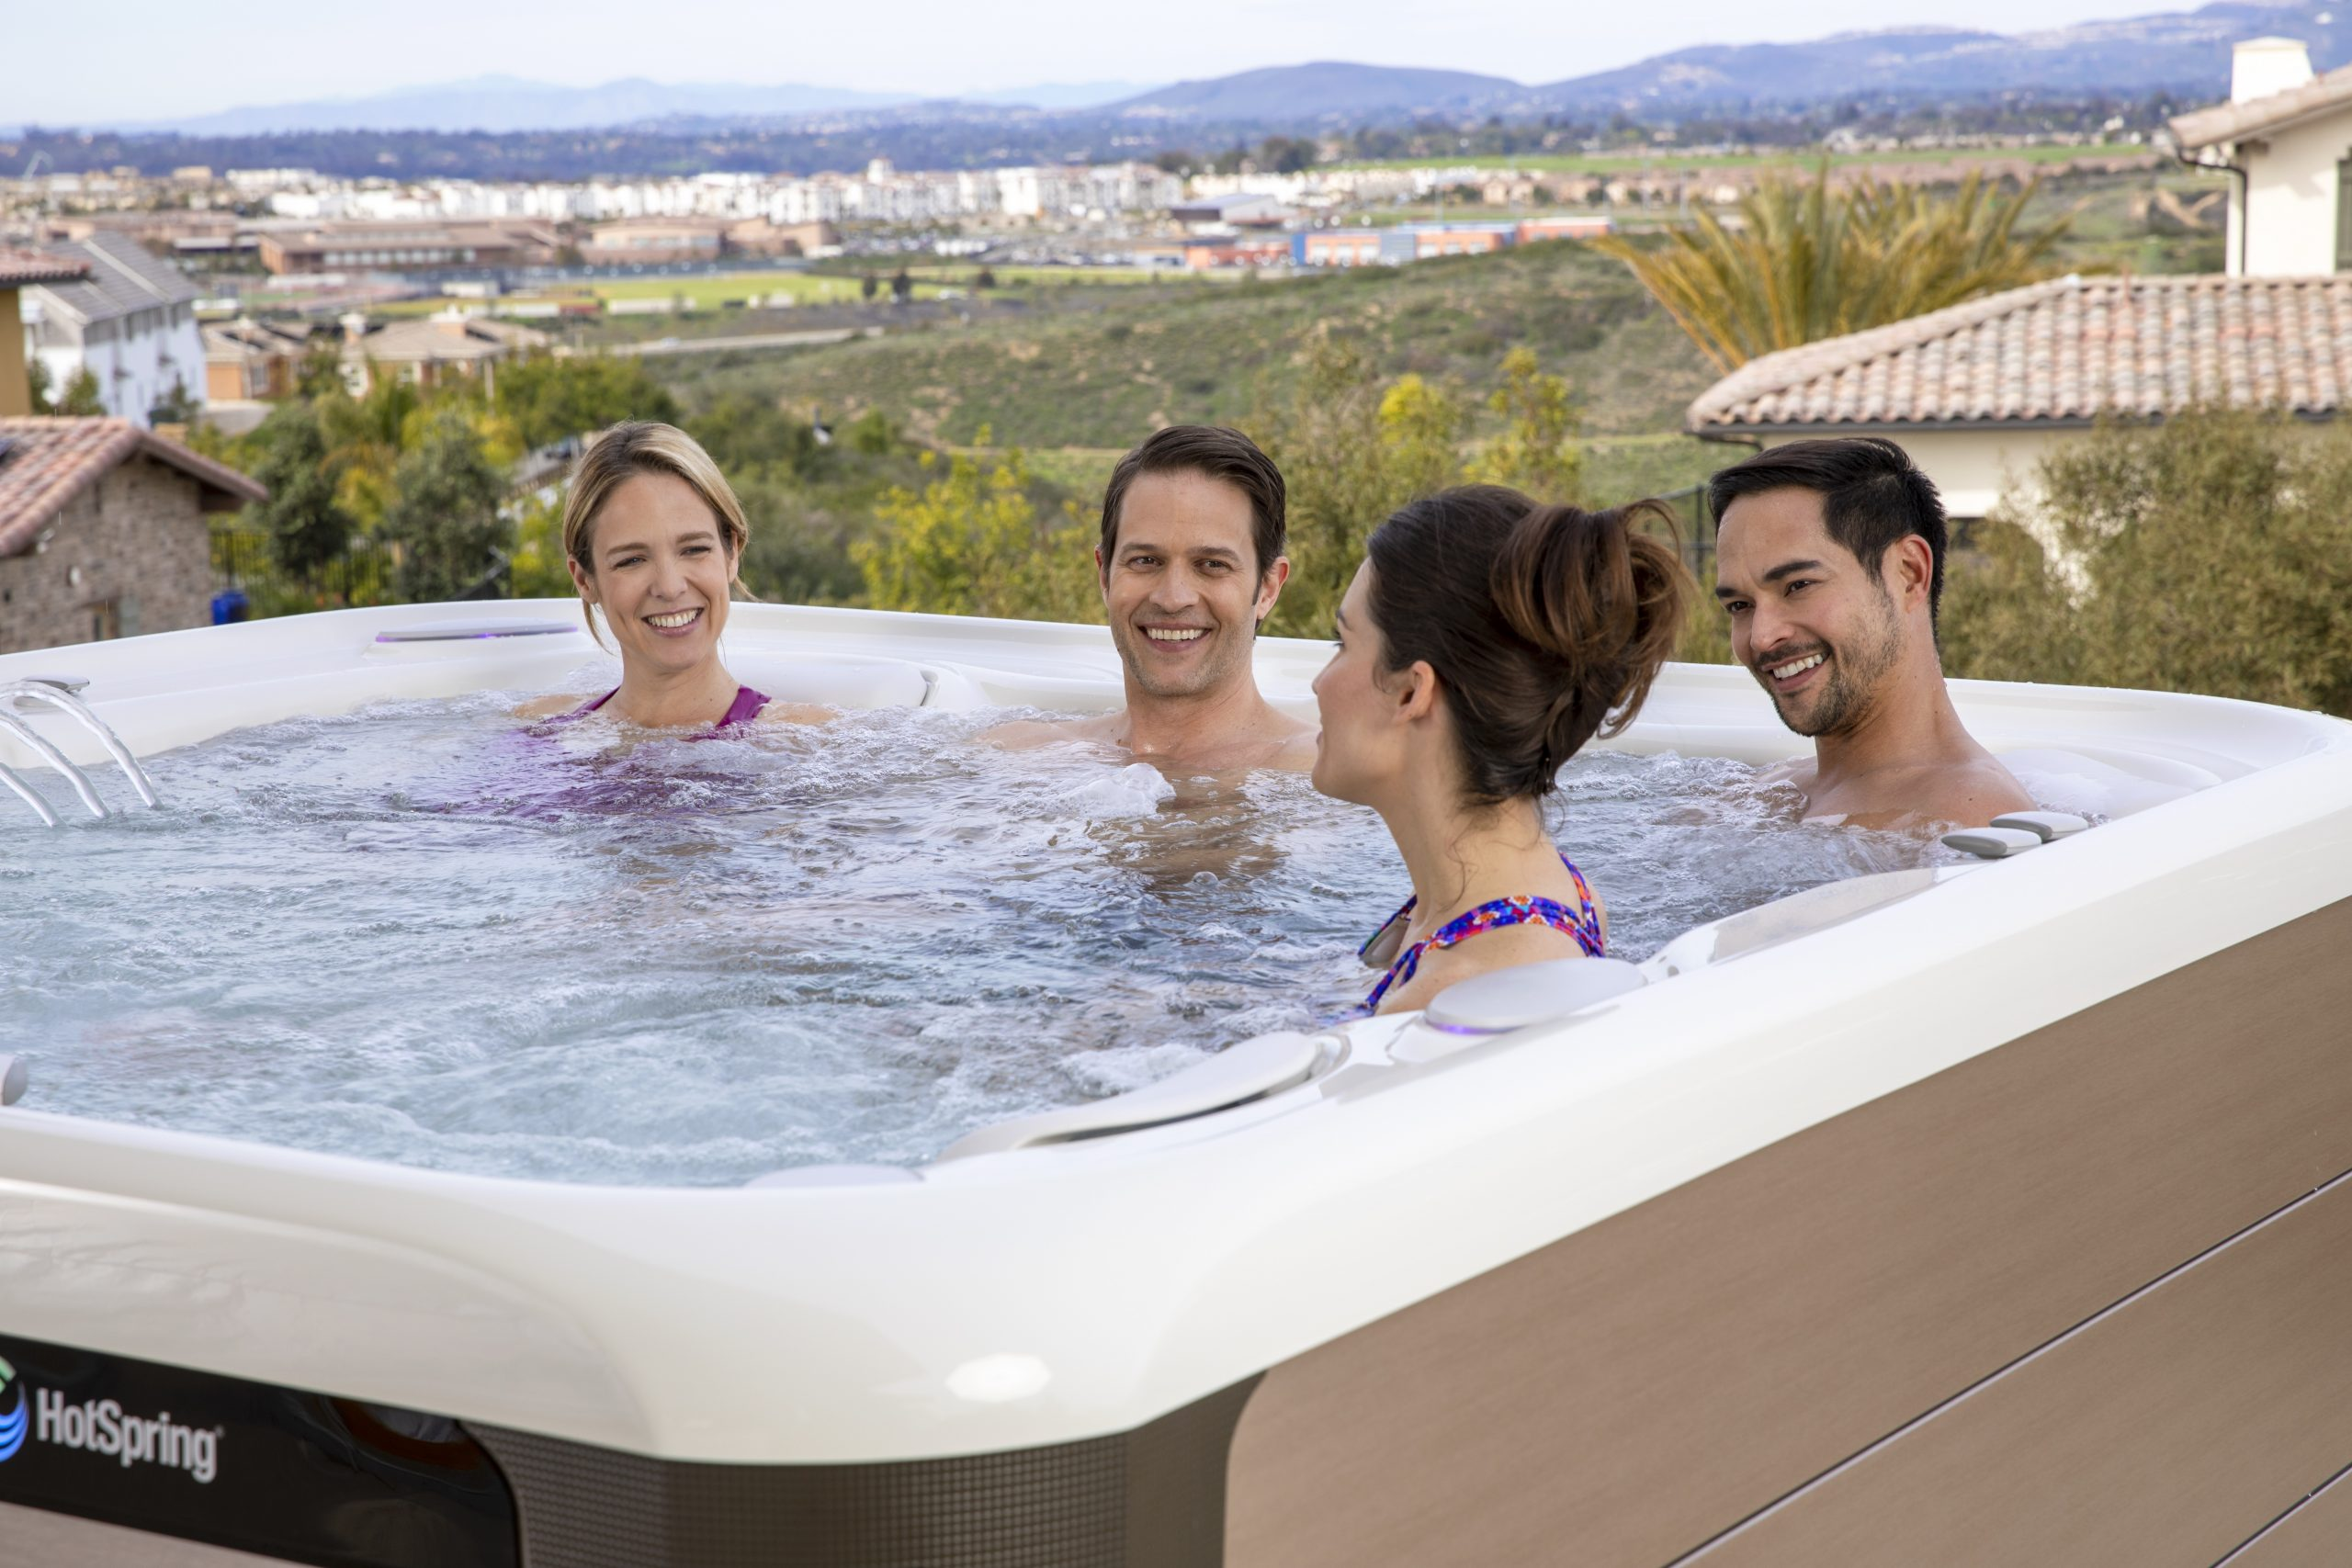 How To Pick The Right Hot Tub For You